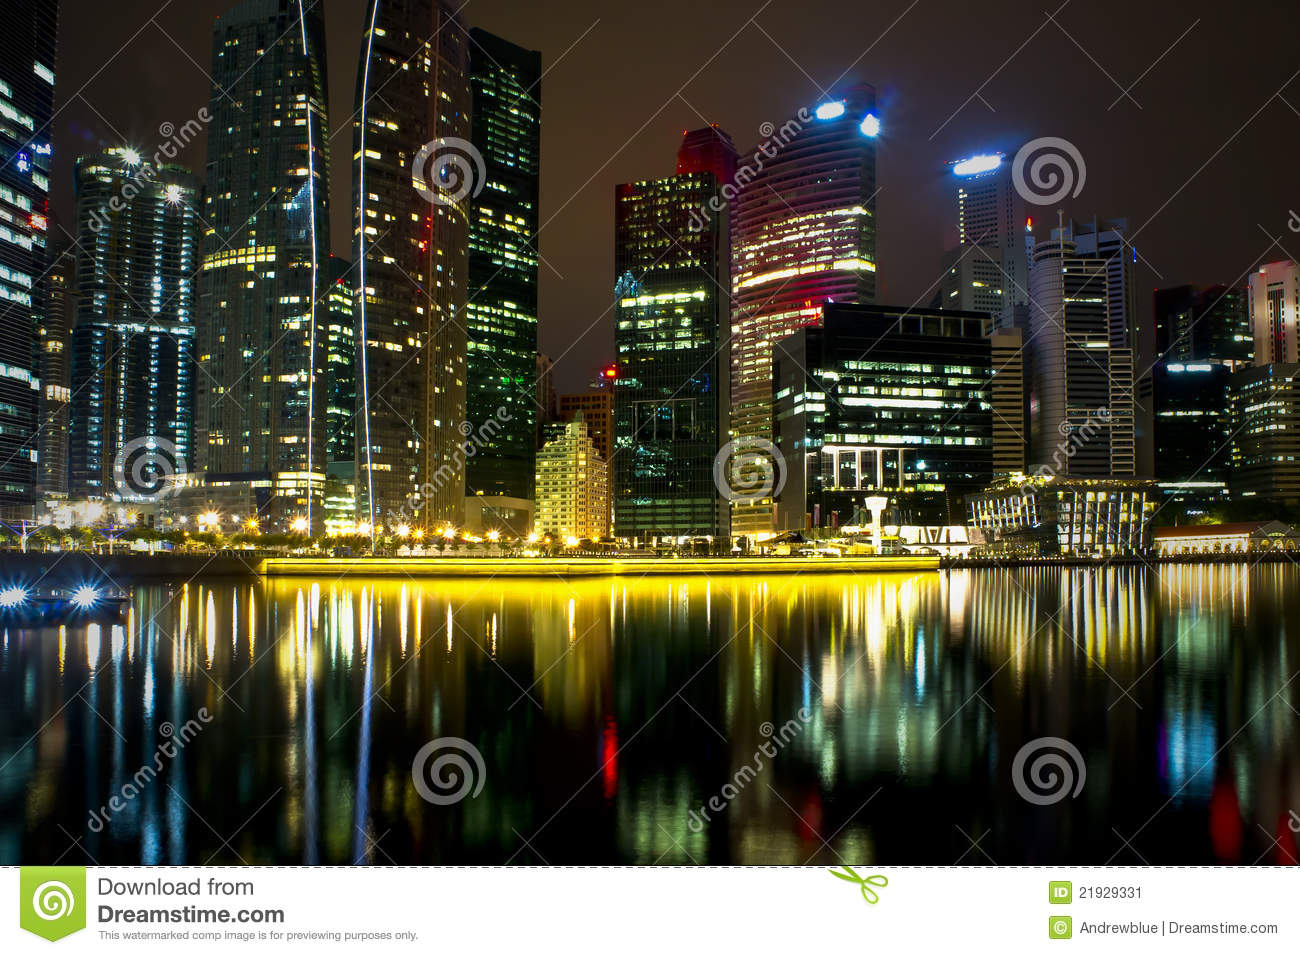 Colorful City Night Lights Stock Image - Image: 21929331  Colorful City N...